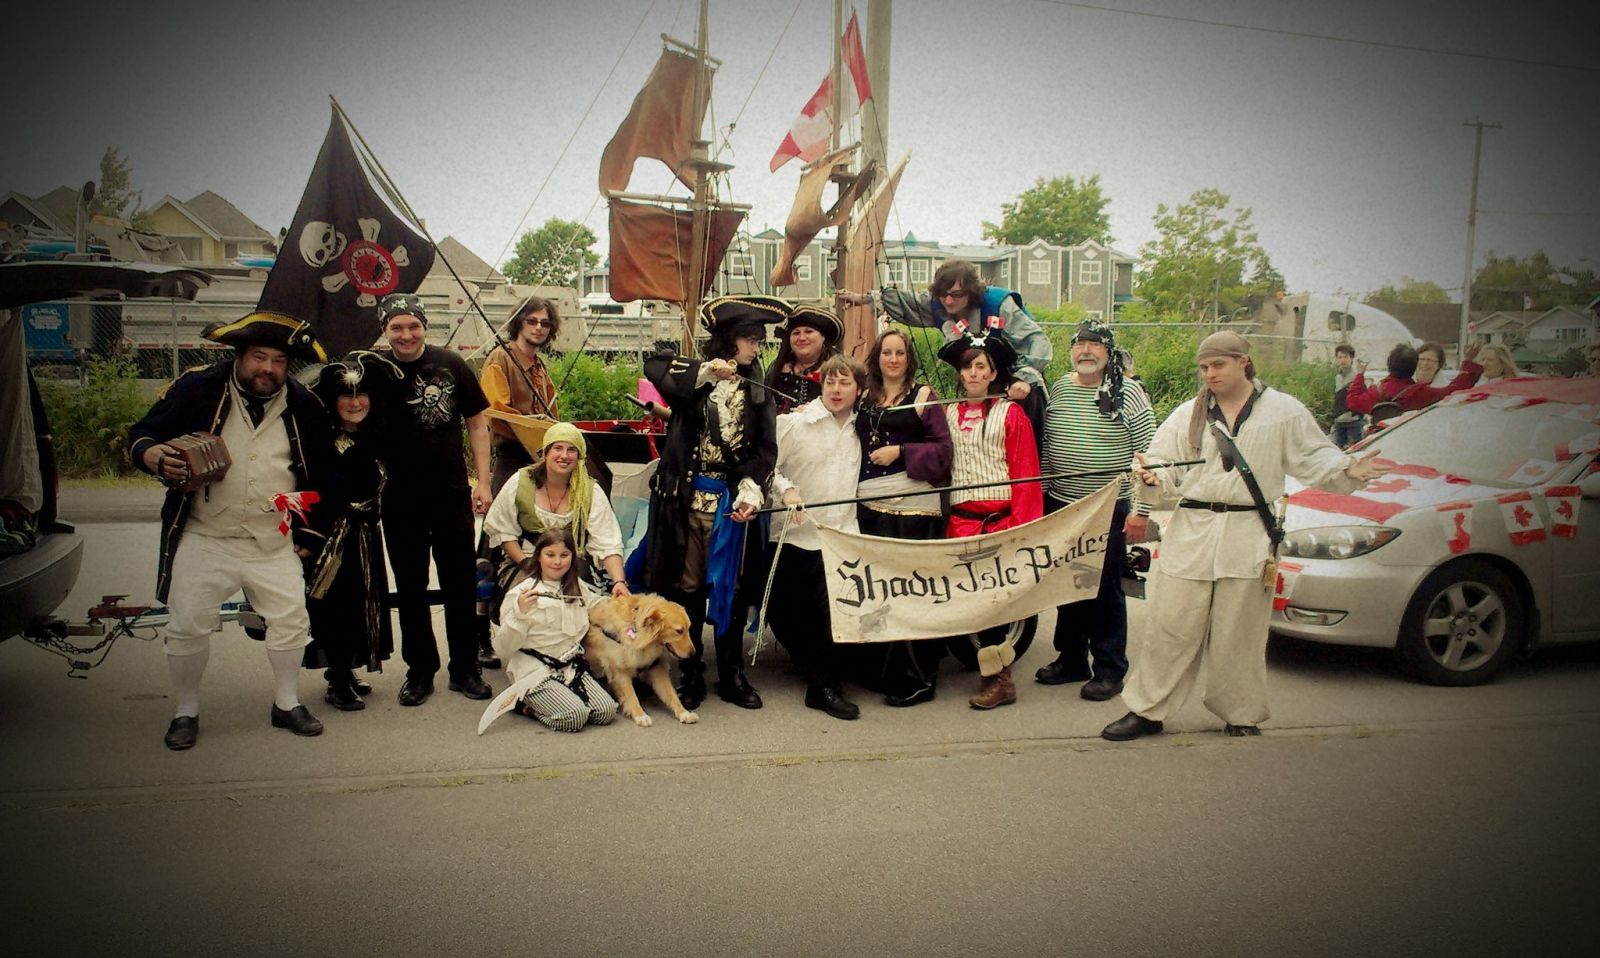 Shady Isle Pirates 67th Annual Salmon Festival Parade